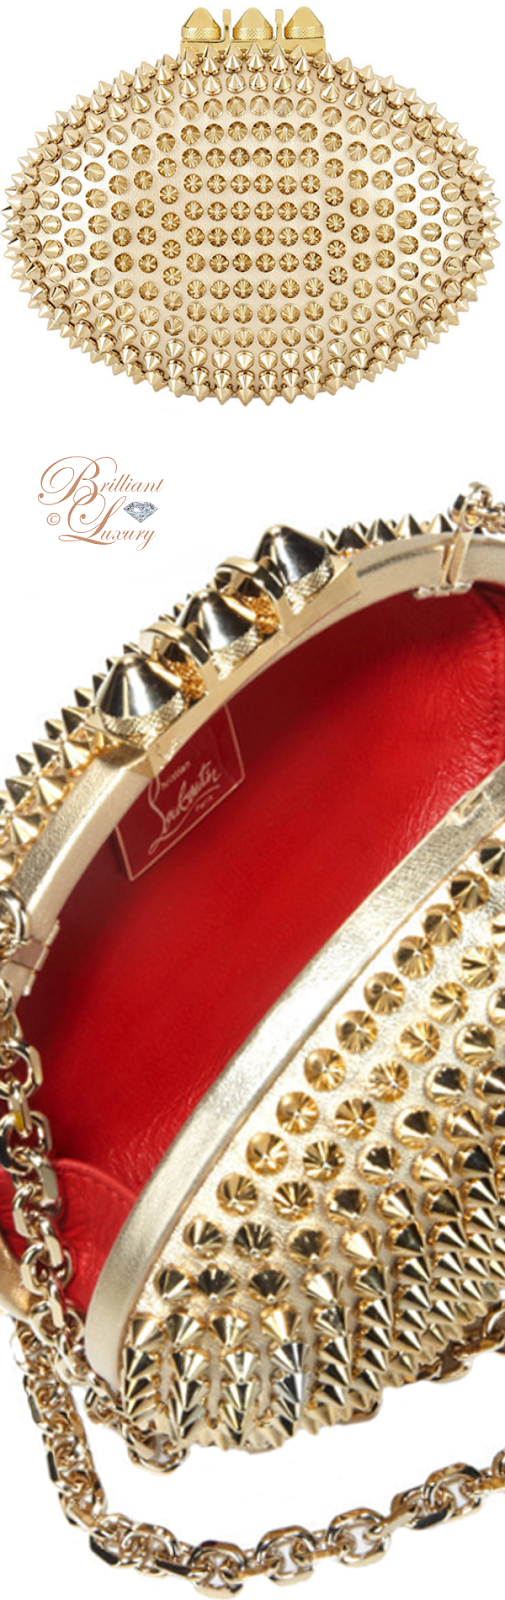 Brilliant Luxury ♦ Christian Louboutin Mina clutch spikes